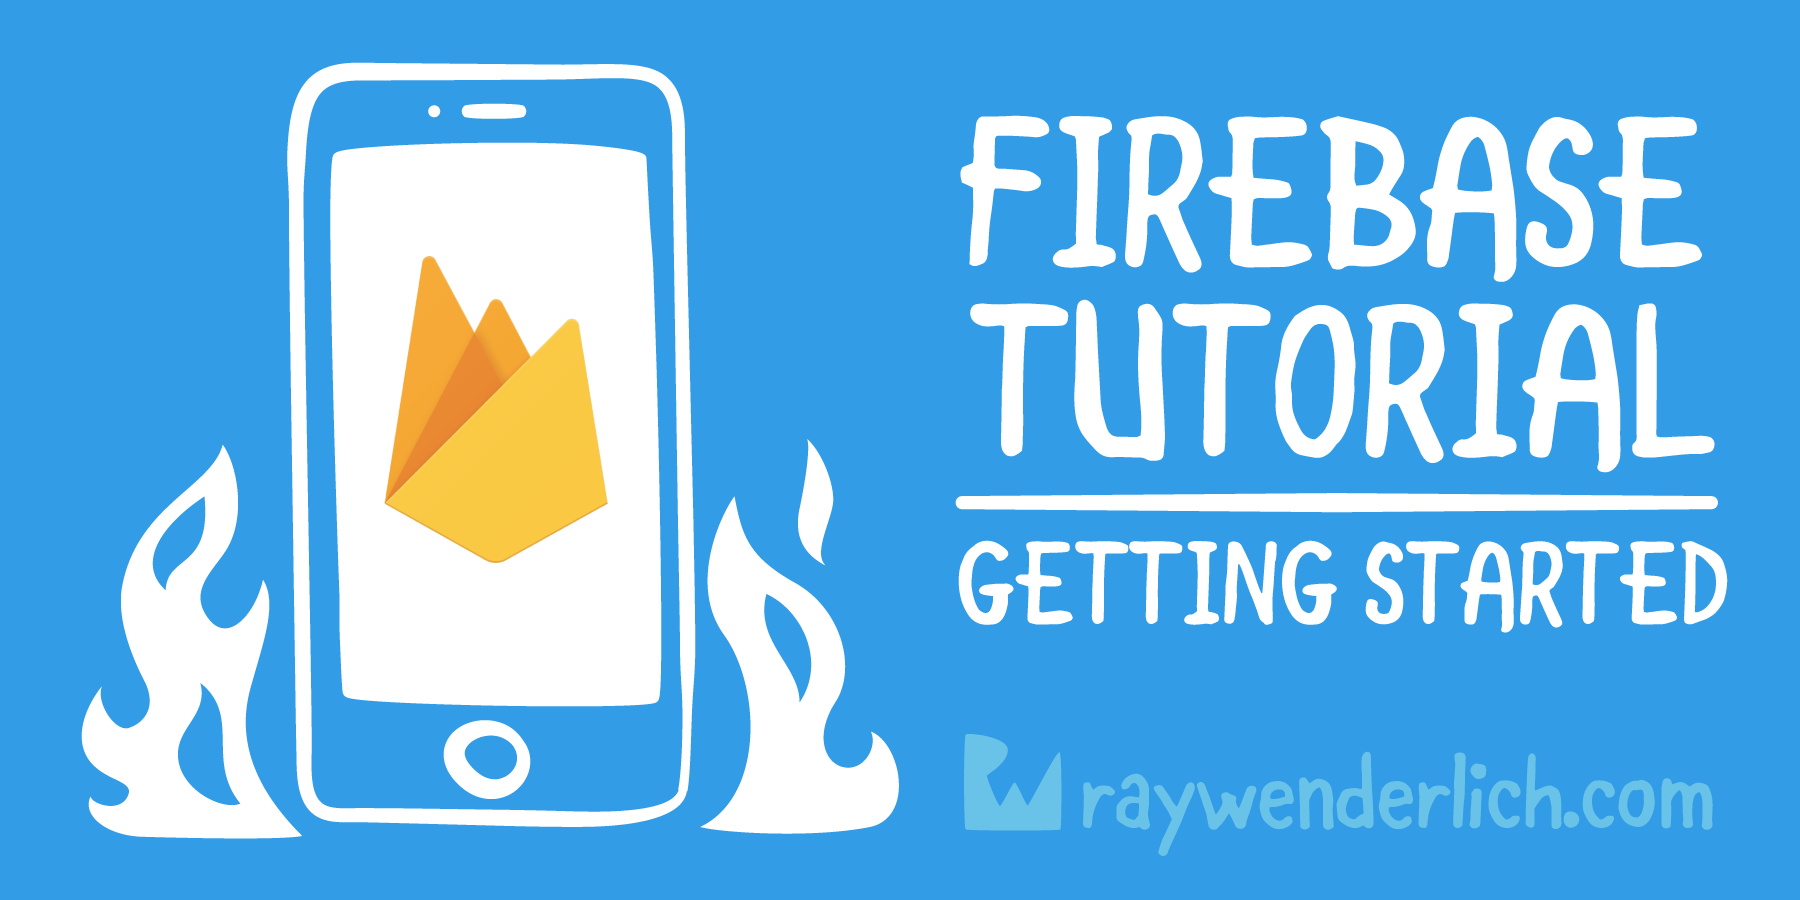 Firebase Tutorial: Getting Started | raywenderlich com